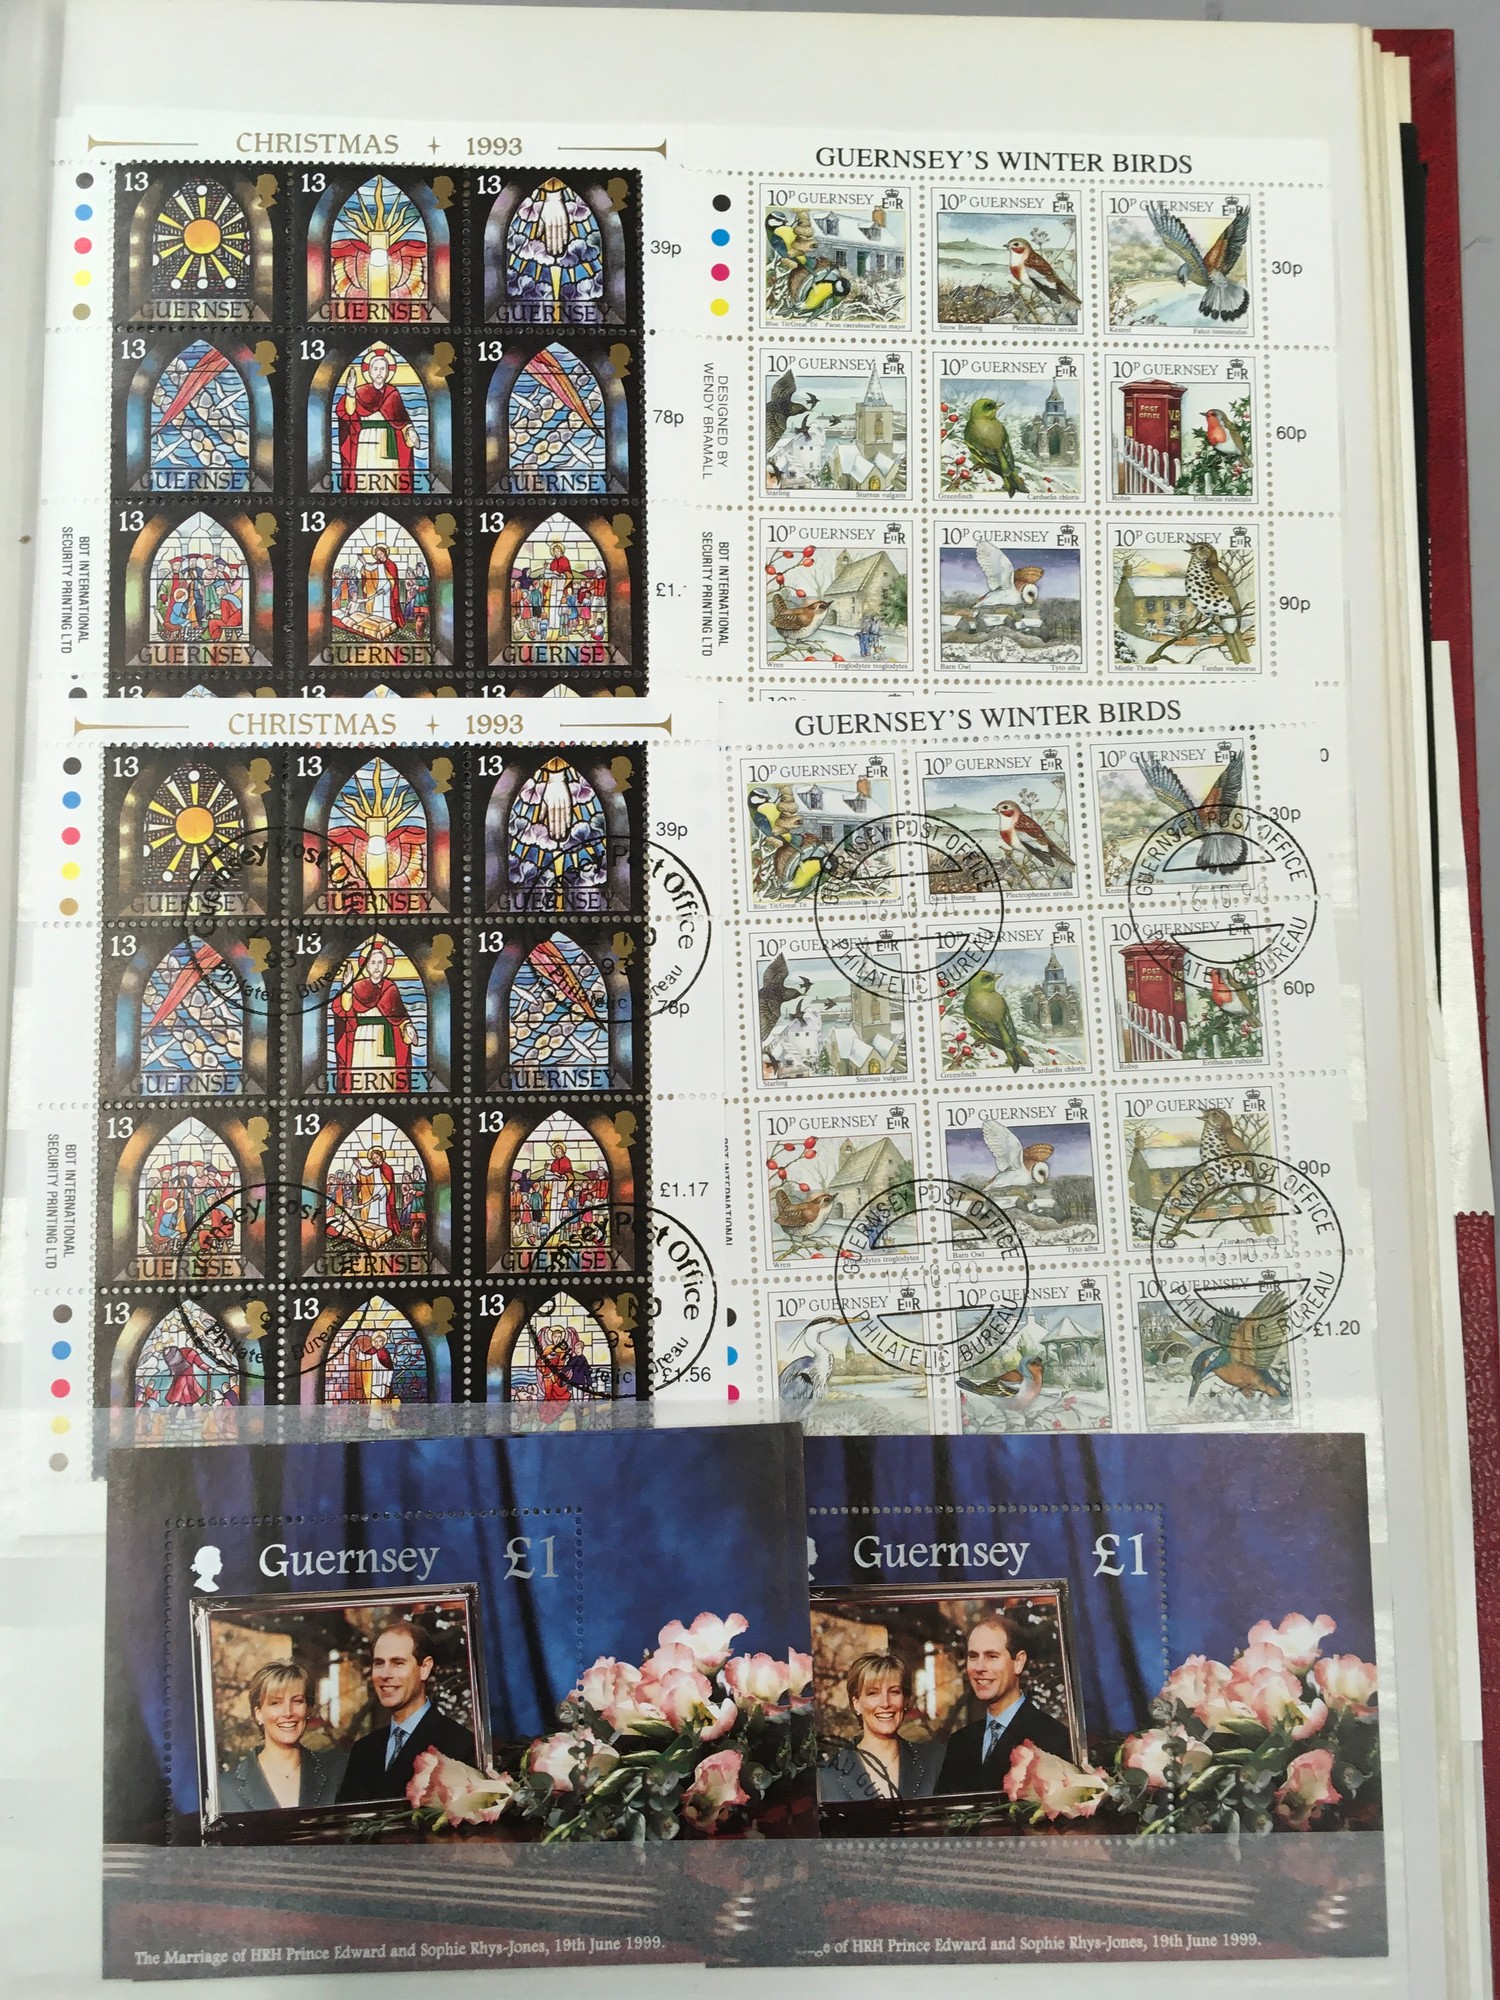 3 x Albums containing Channel Islands, Jersey Guernsey and Alderney over £800 in mint stamps. - Image 7 of 21